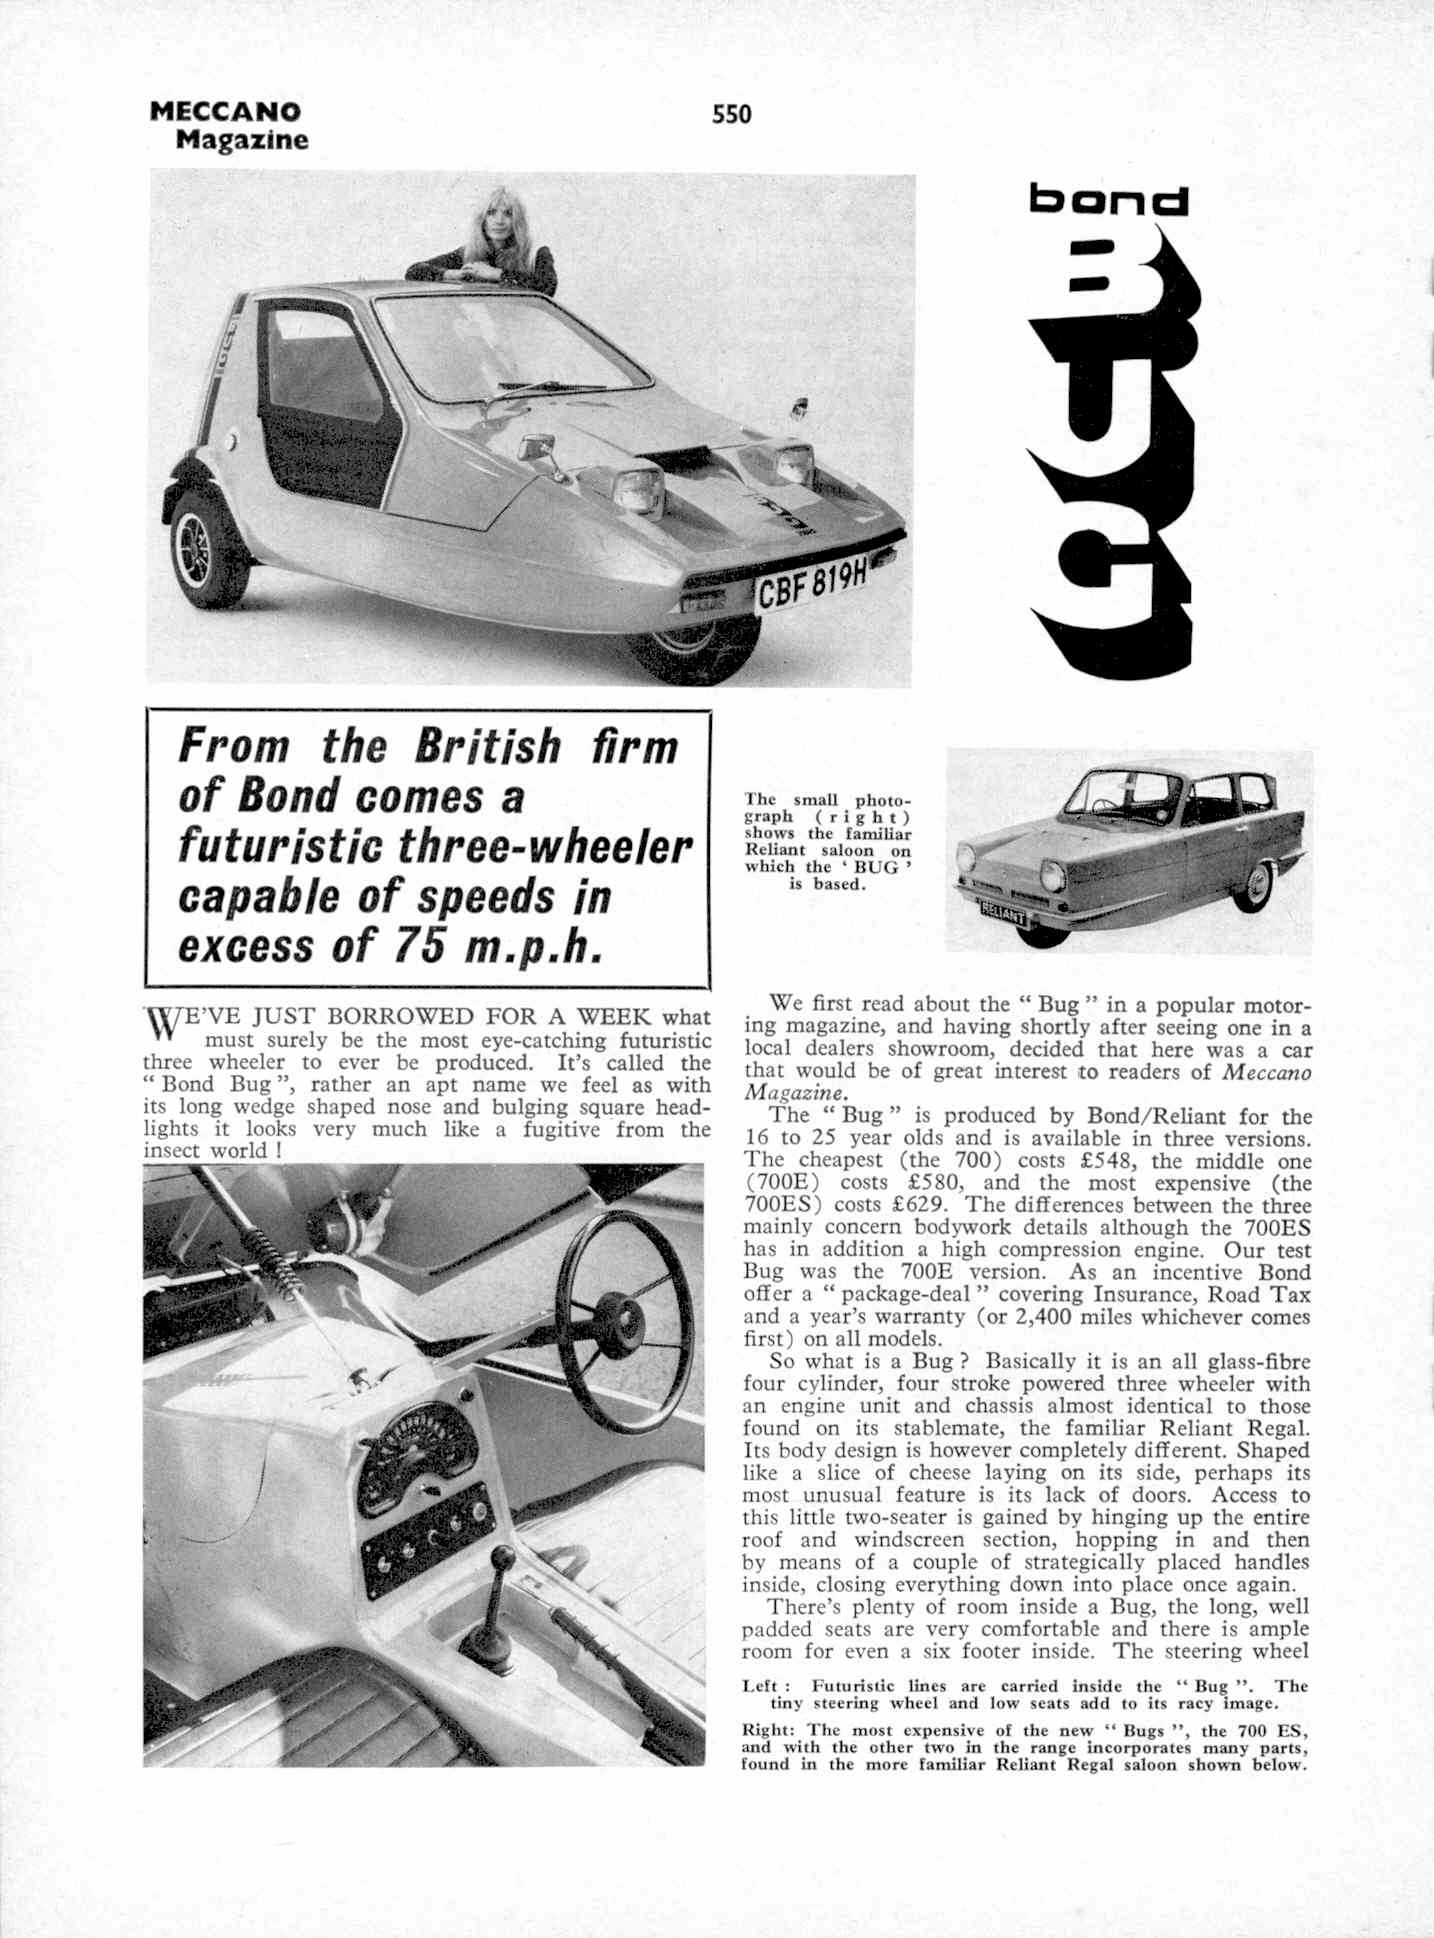 UK Meccano Magazine October 1970 Page 550